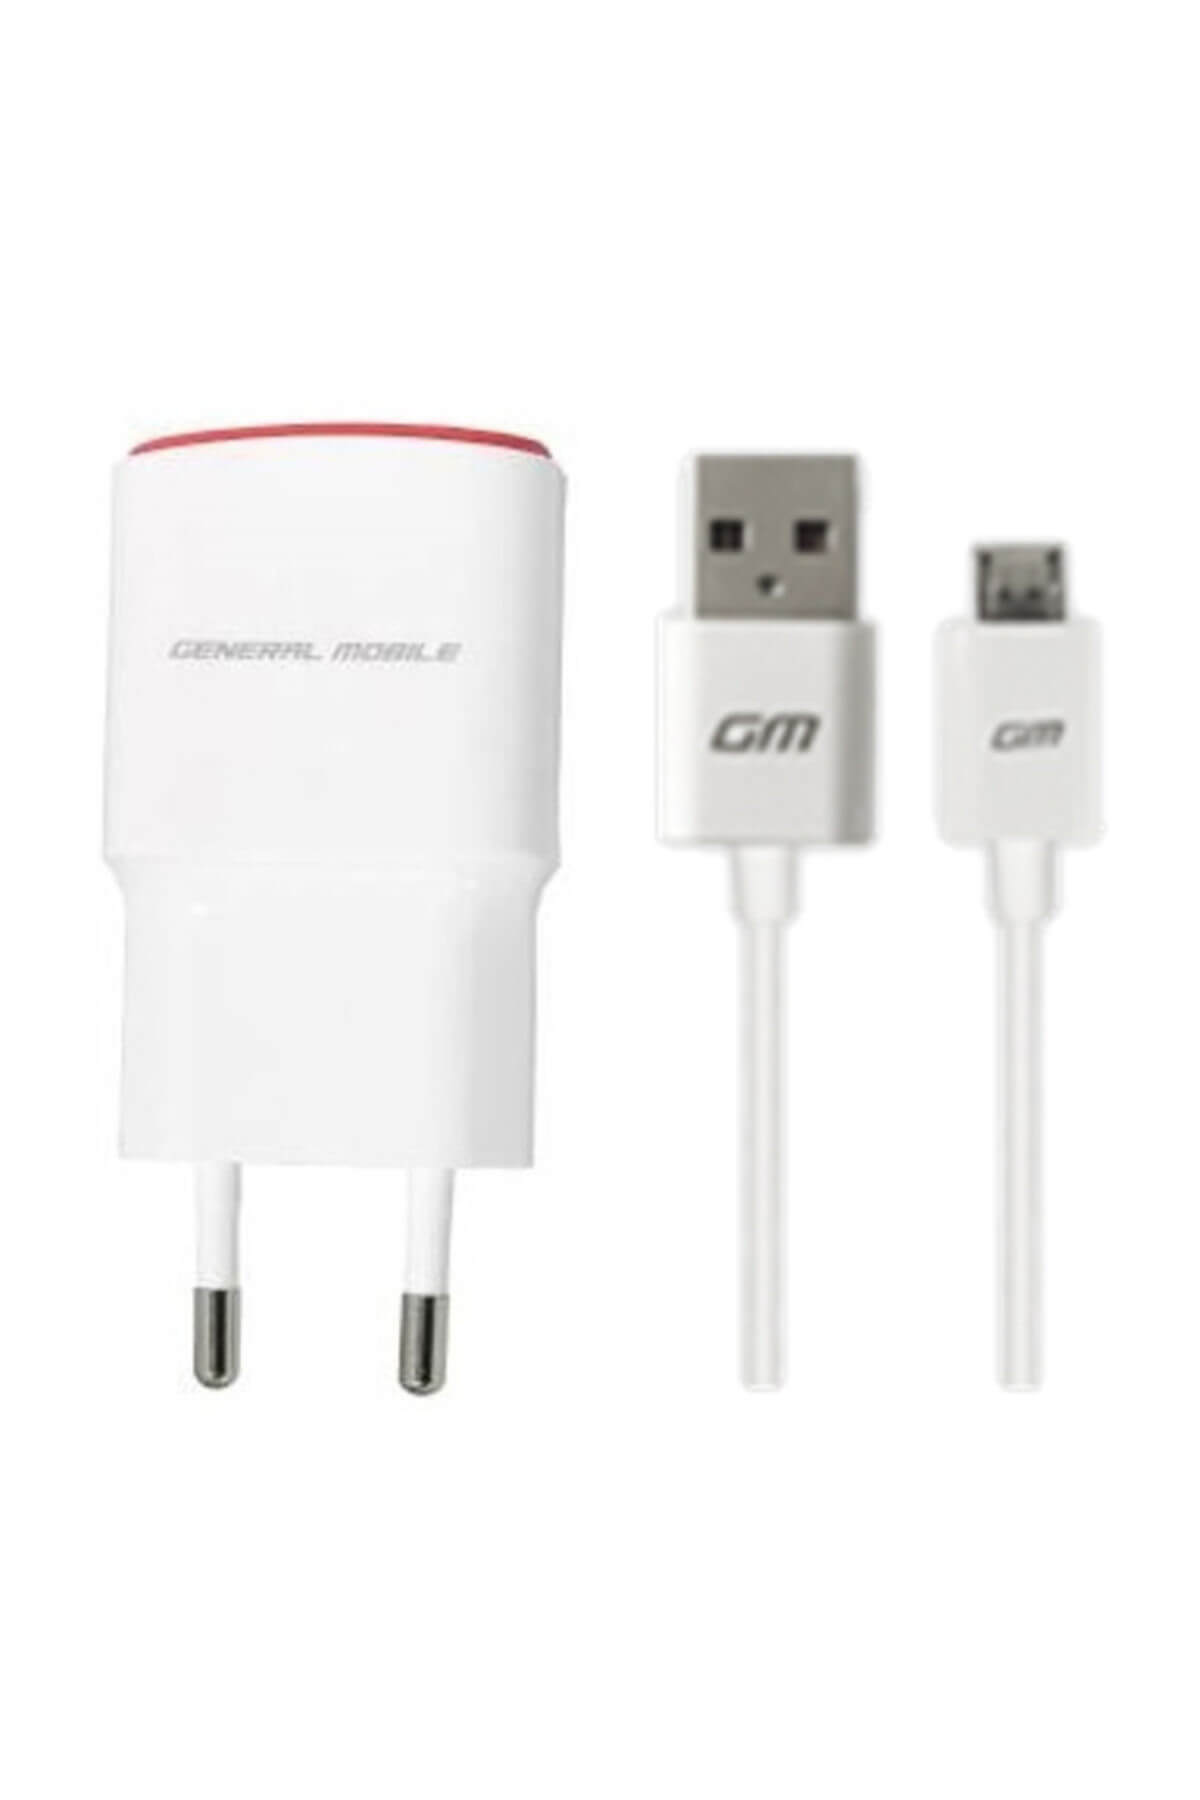 General Mobile Gm 8 Micro Usb Orijinal Şarj Aleti